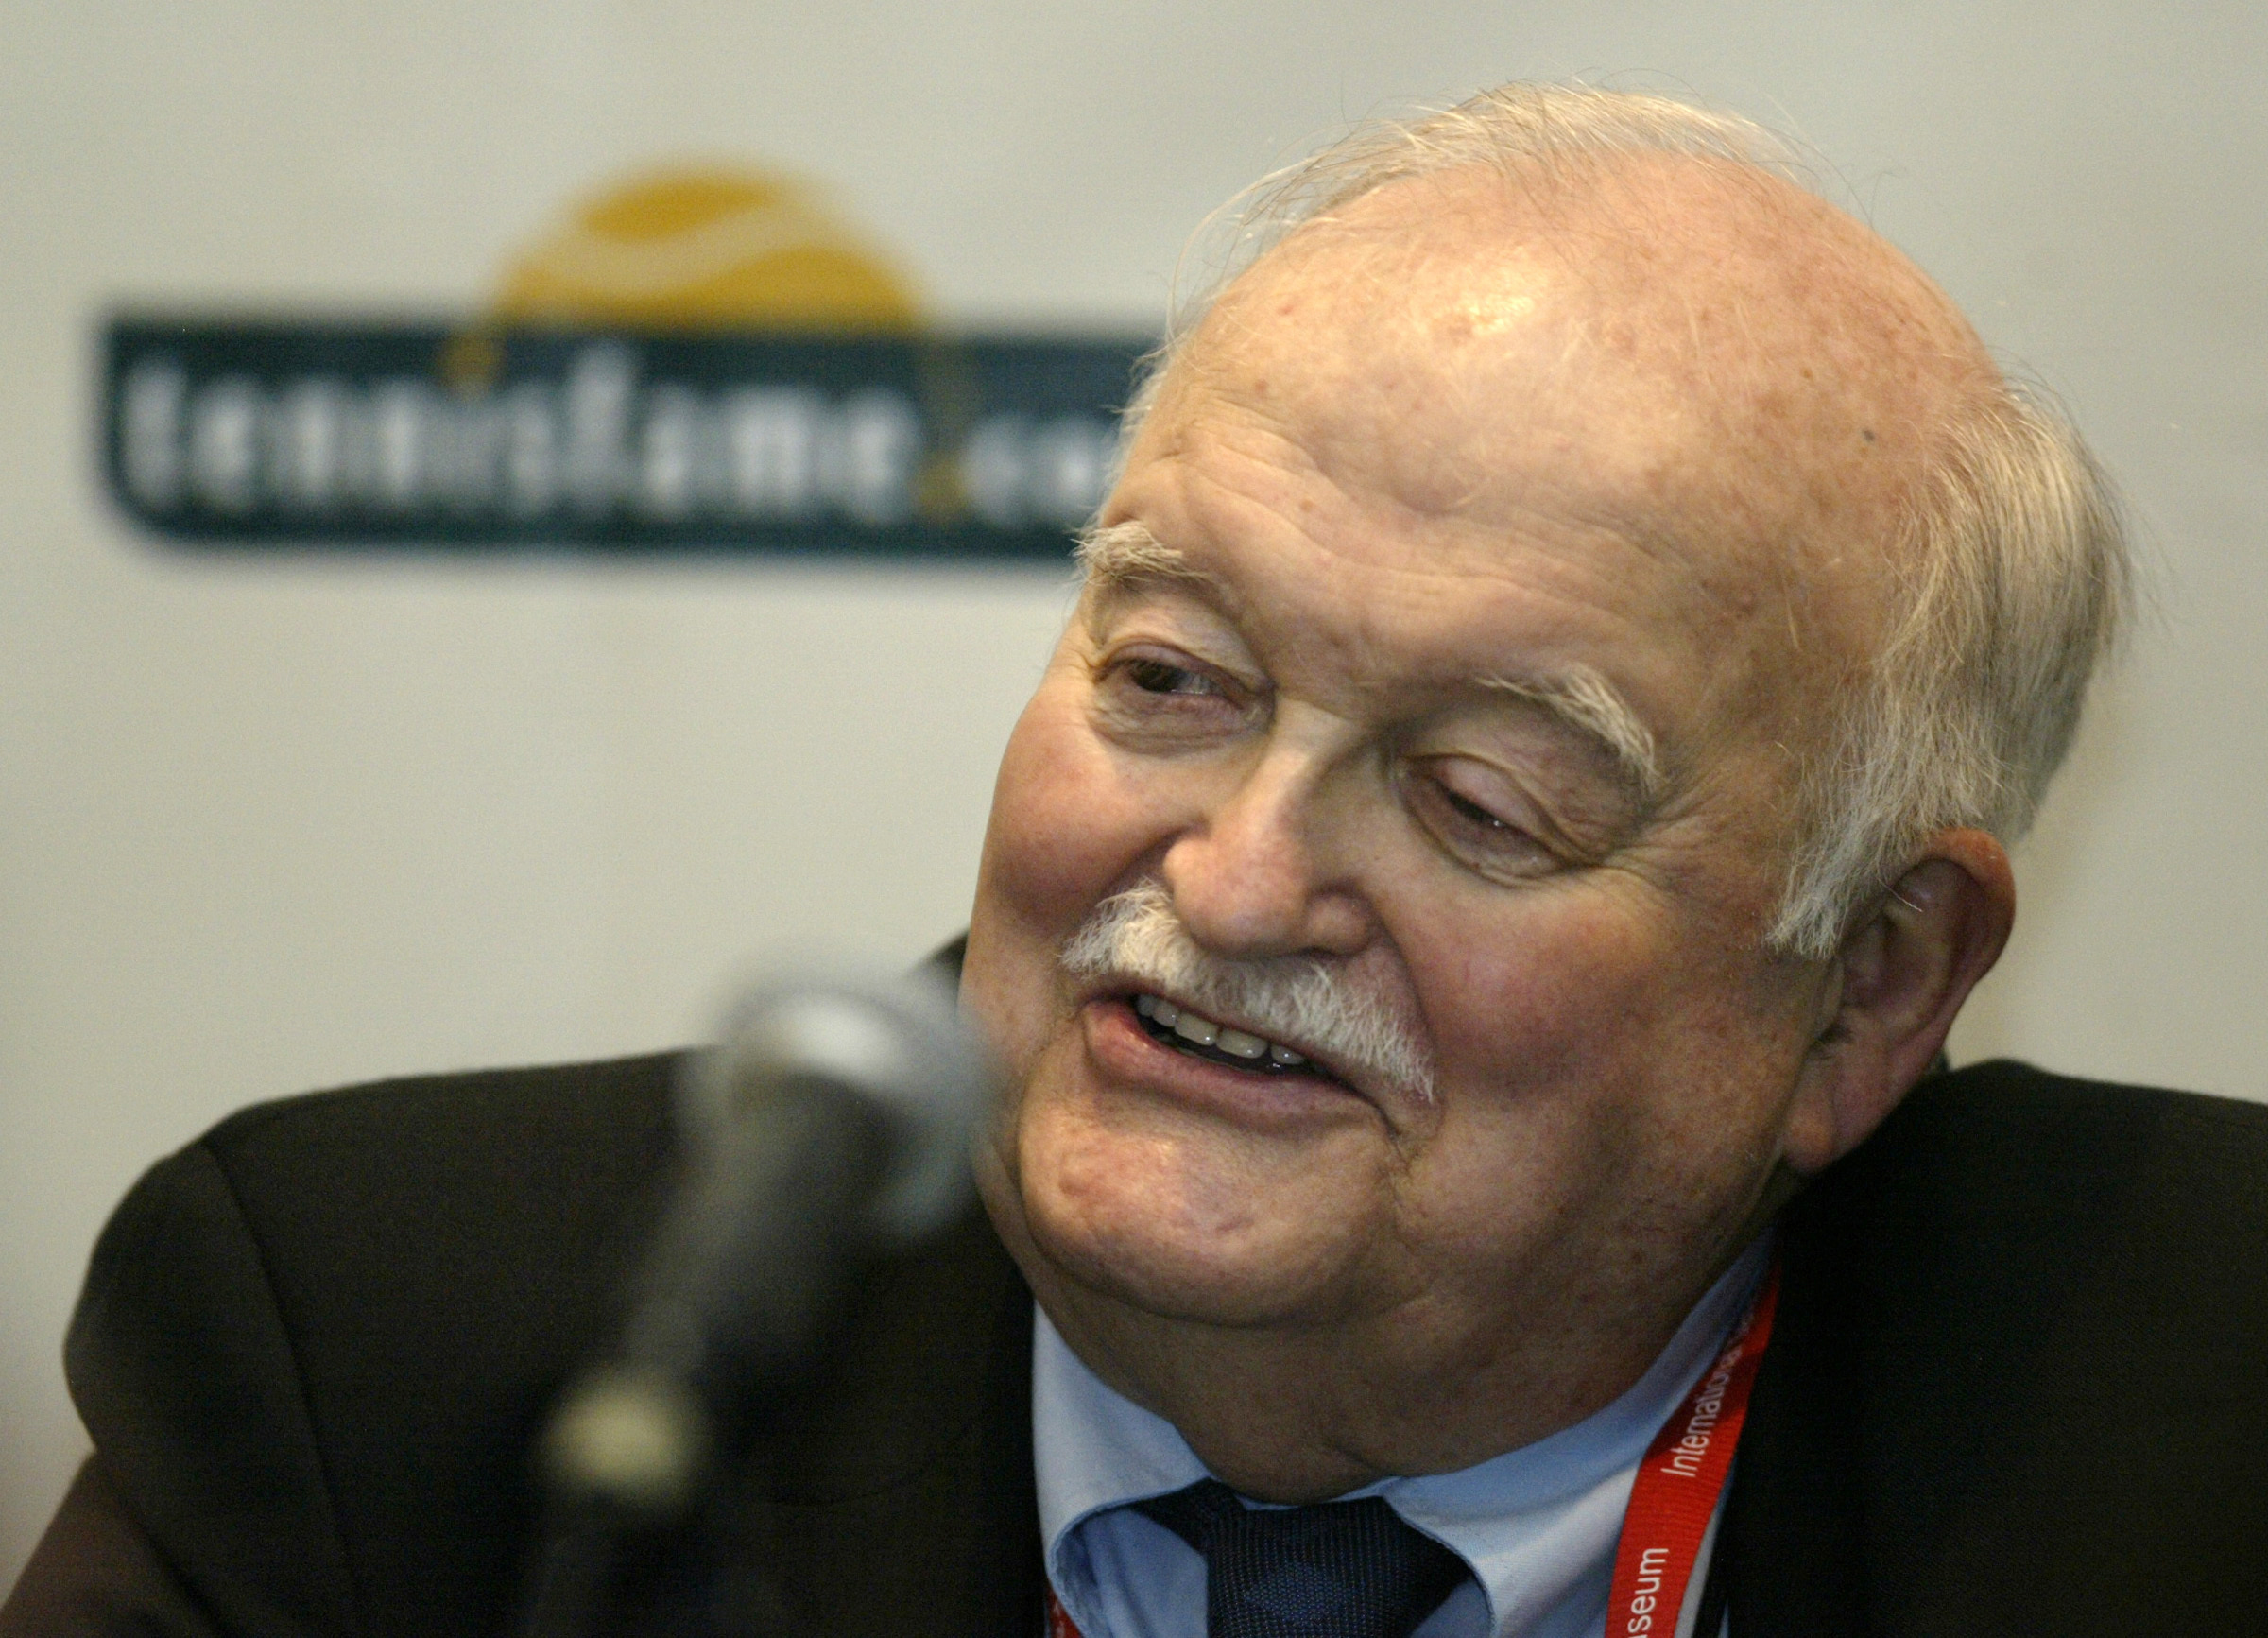 FILE - In this July 14, 2007, file photo, photographer Russ Adams talks during a news conference prior to his induction into the International Tennis Hall of Fame in Newport, R.I. The acclaimed tennis photographer has died Friday, June 30, 2017, after chr